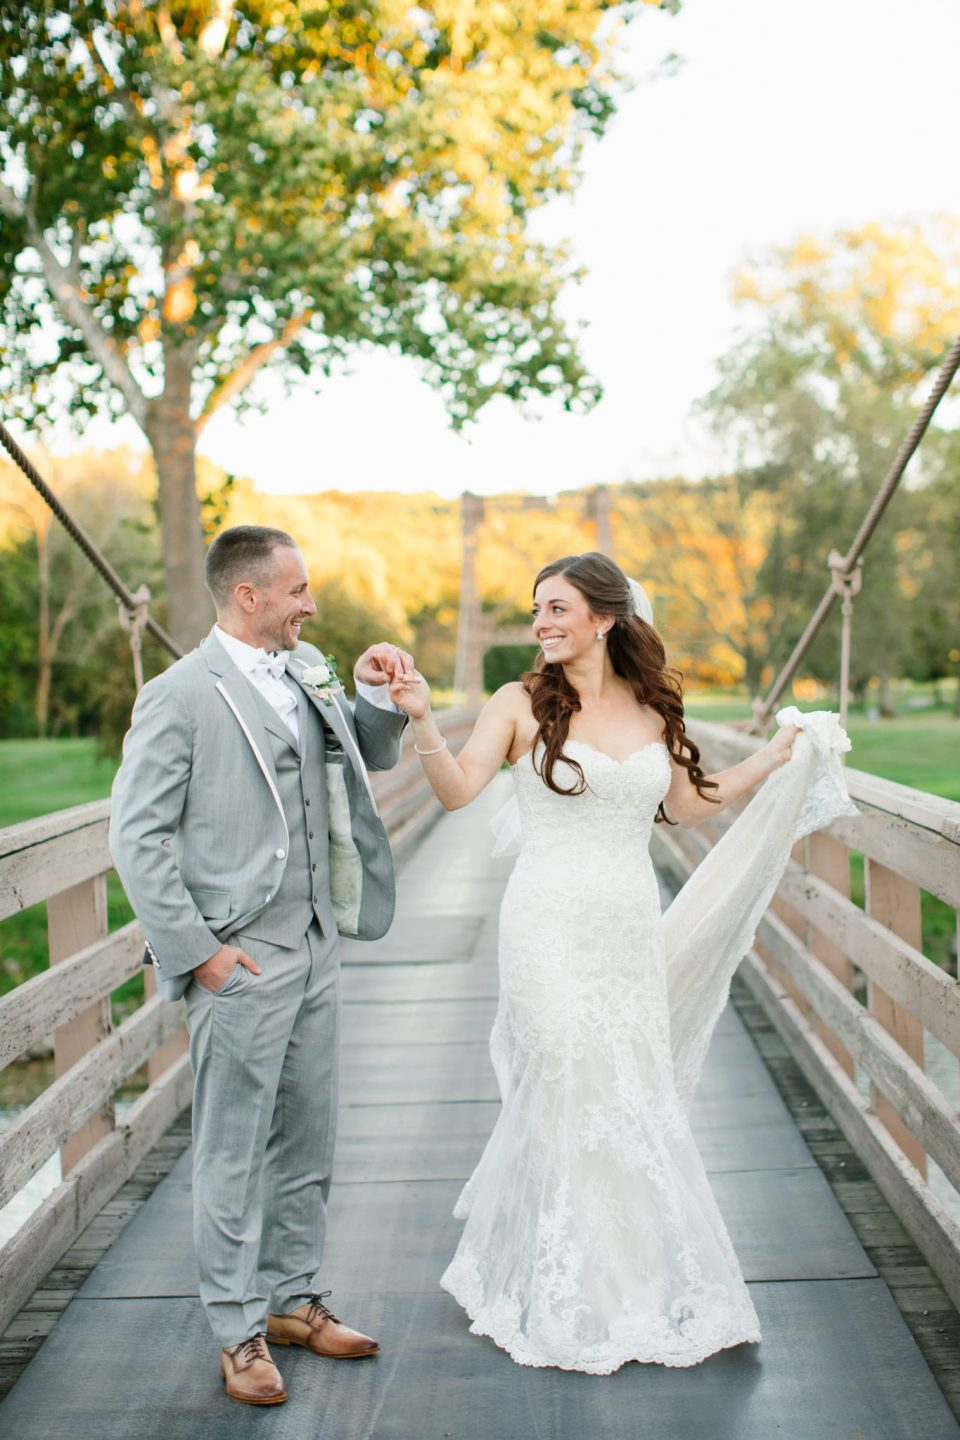 Ashley Mac Photographs captures bride and groom on their wedding day